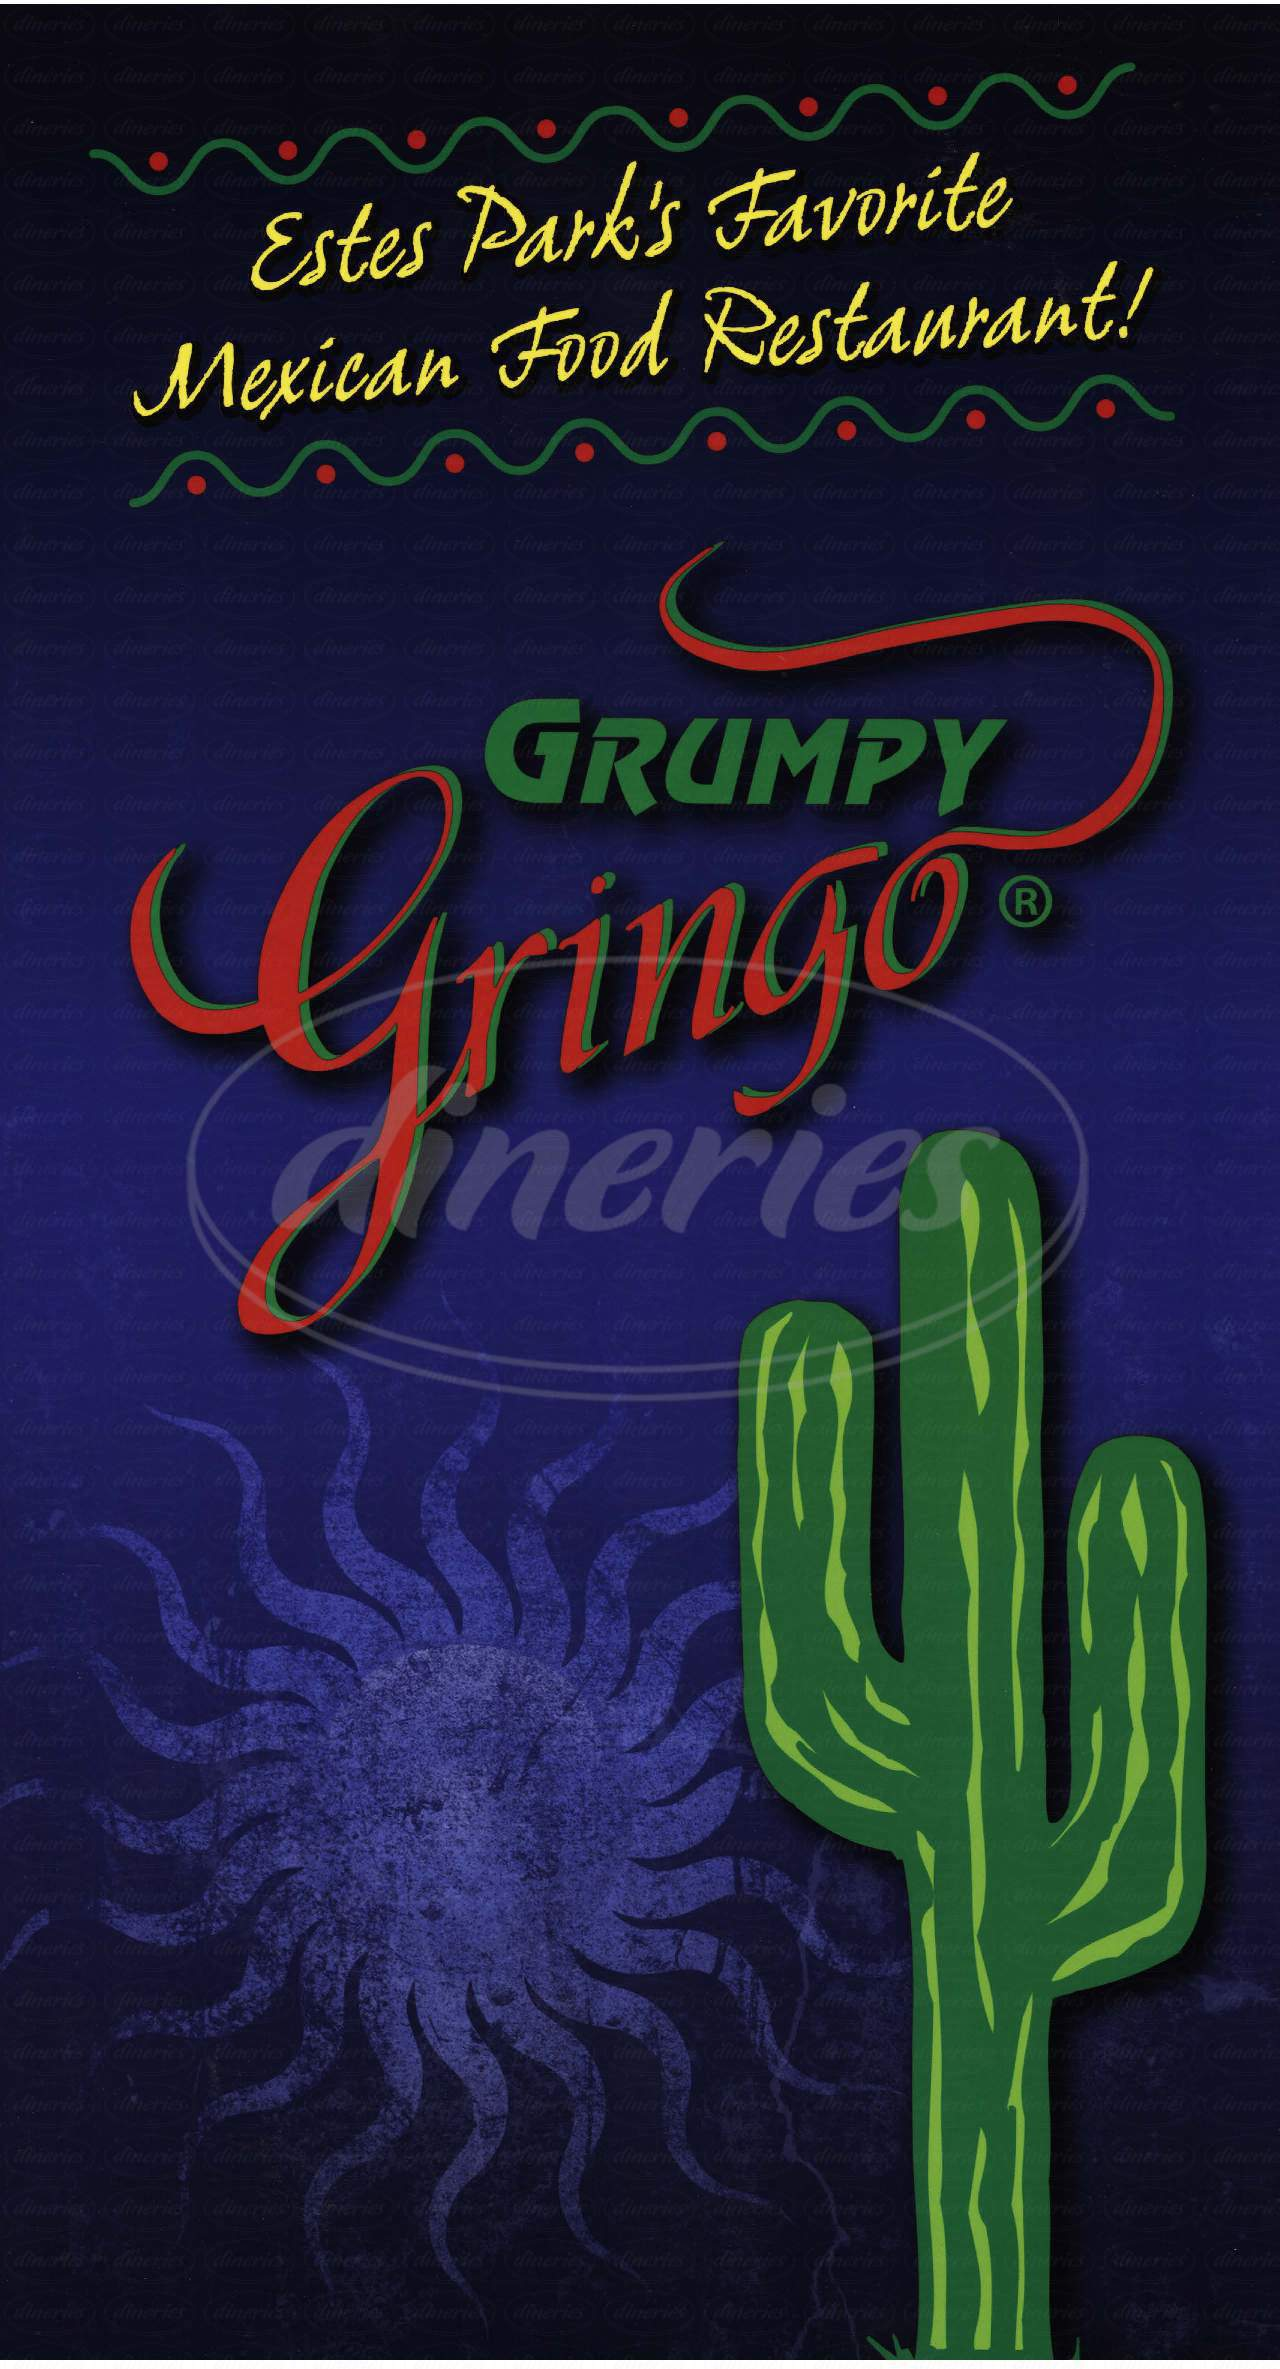 menu for Grumpy Gringo